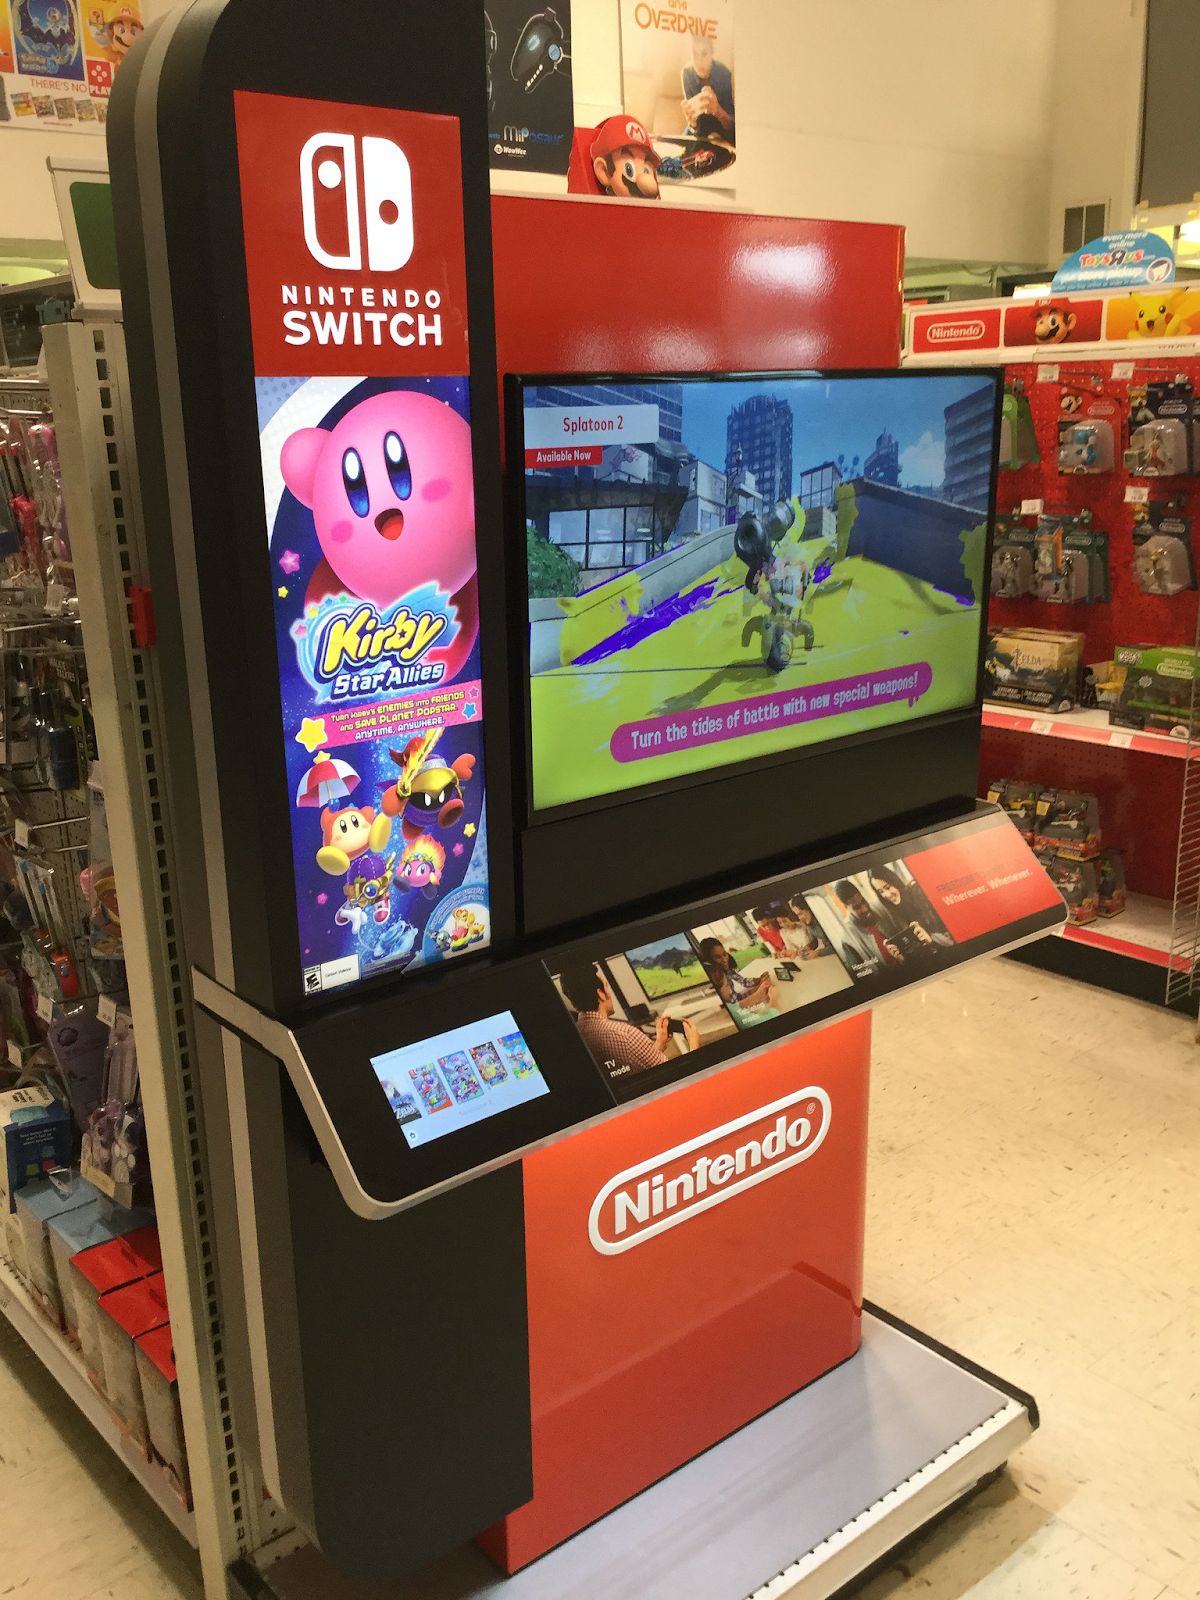 Nintendo Switch kiosk